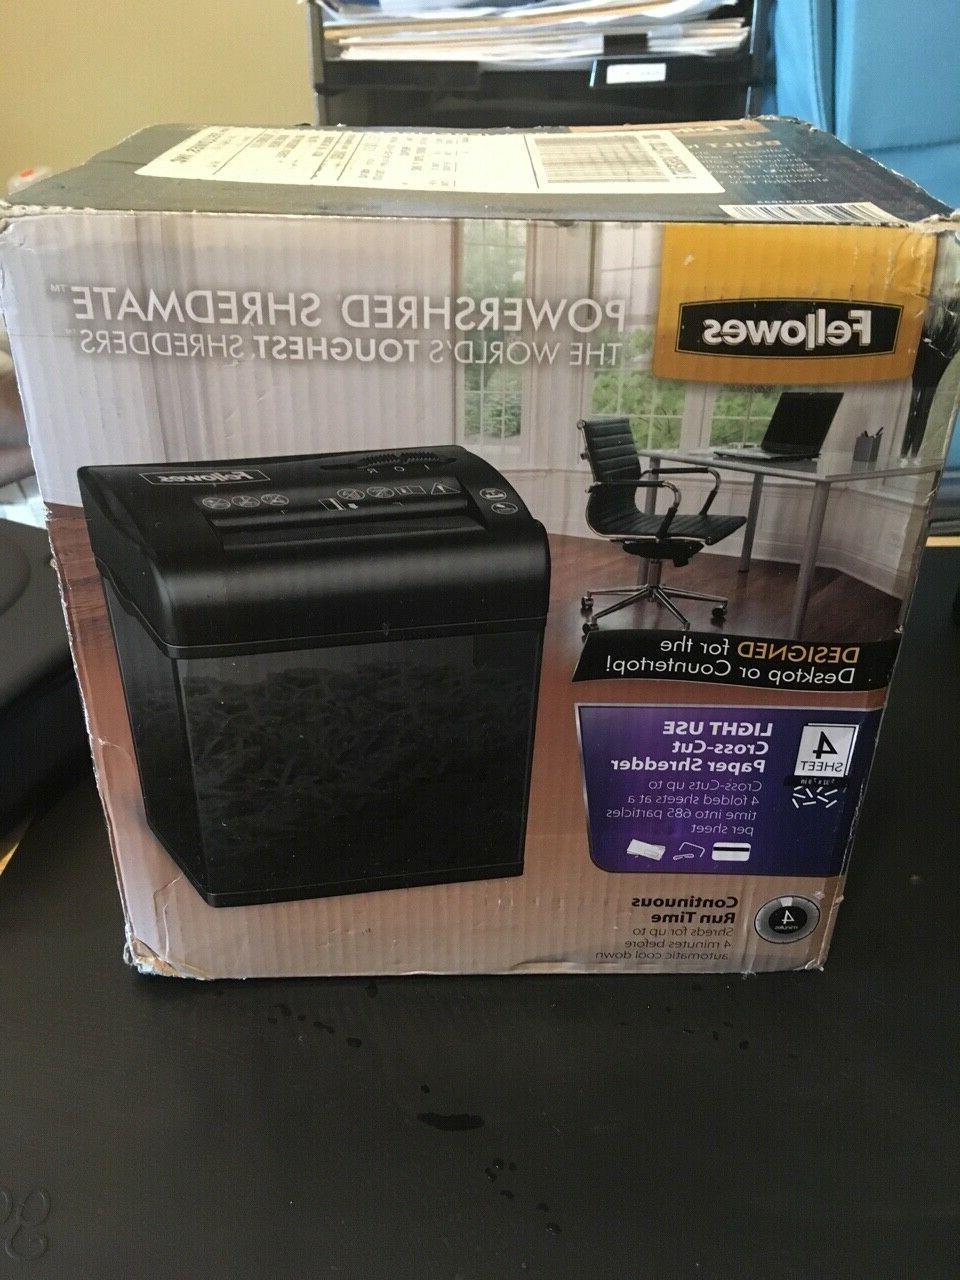 powershred shredmate cross cut desktop paper shredder